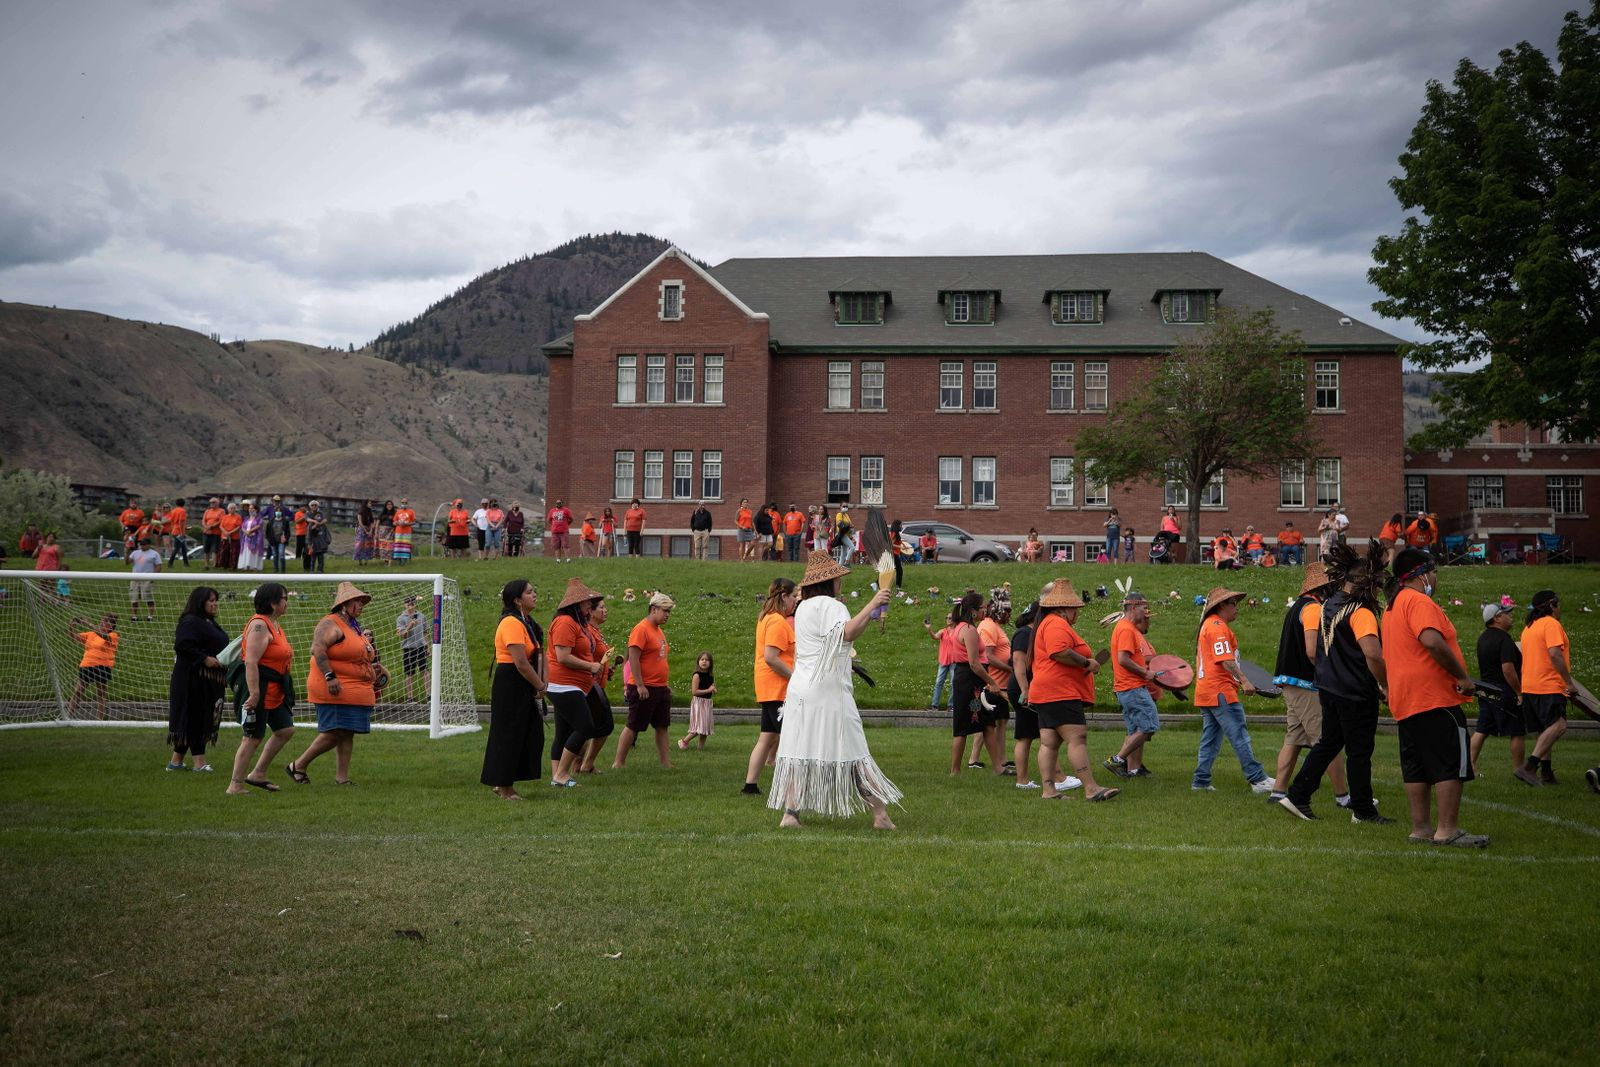 May 31, 2021, Kamloops, BC, Canada: People from the Sto:lo Nation march sing and drum as they march during a ceremony to